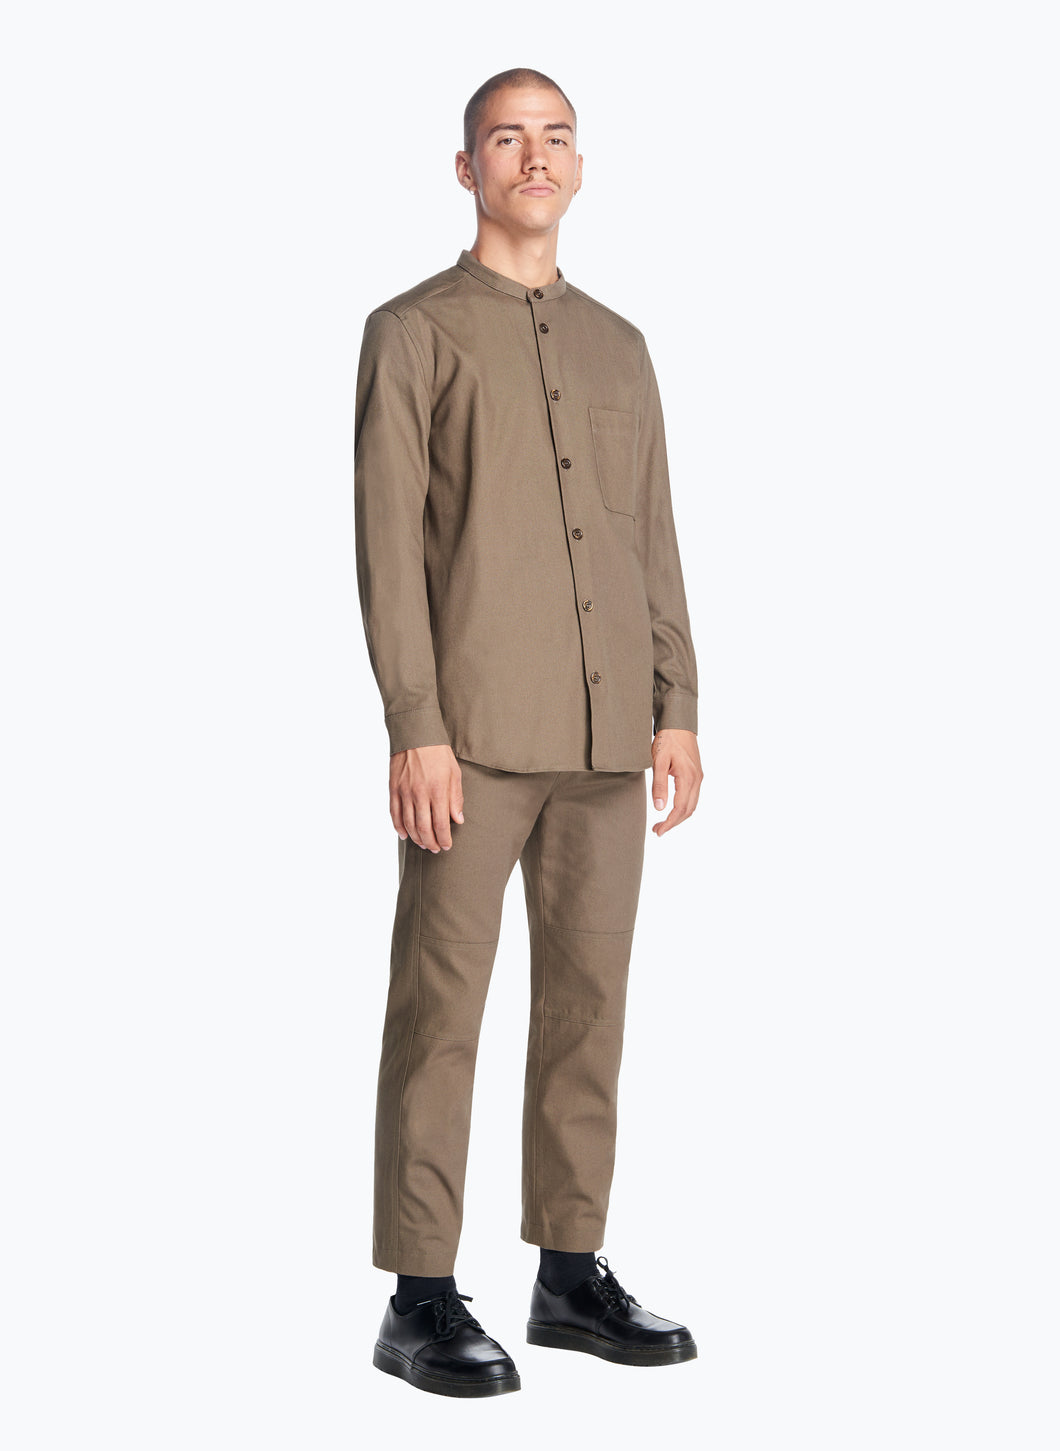 Mandarin Collar Overshirt in Olive Canvas